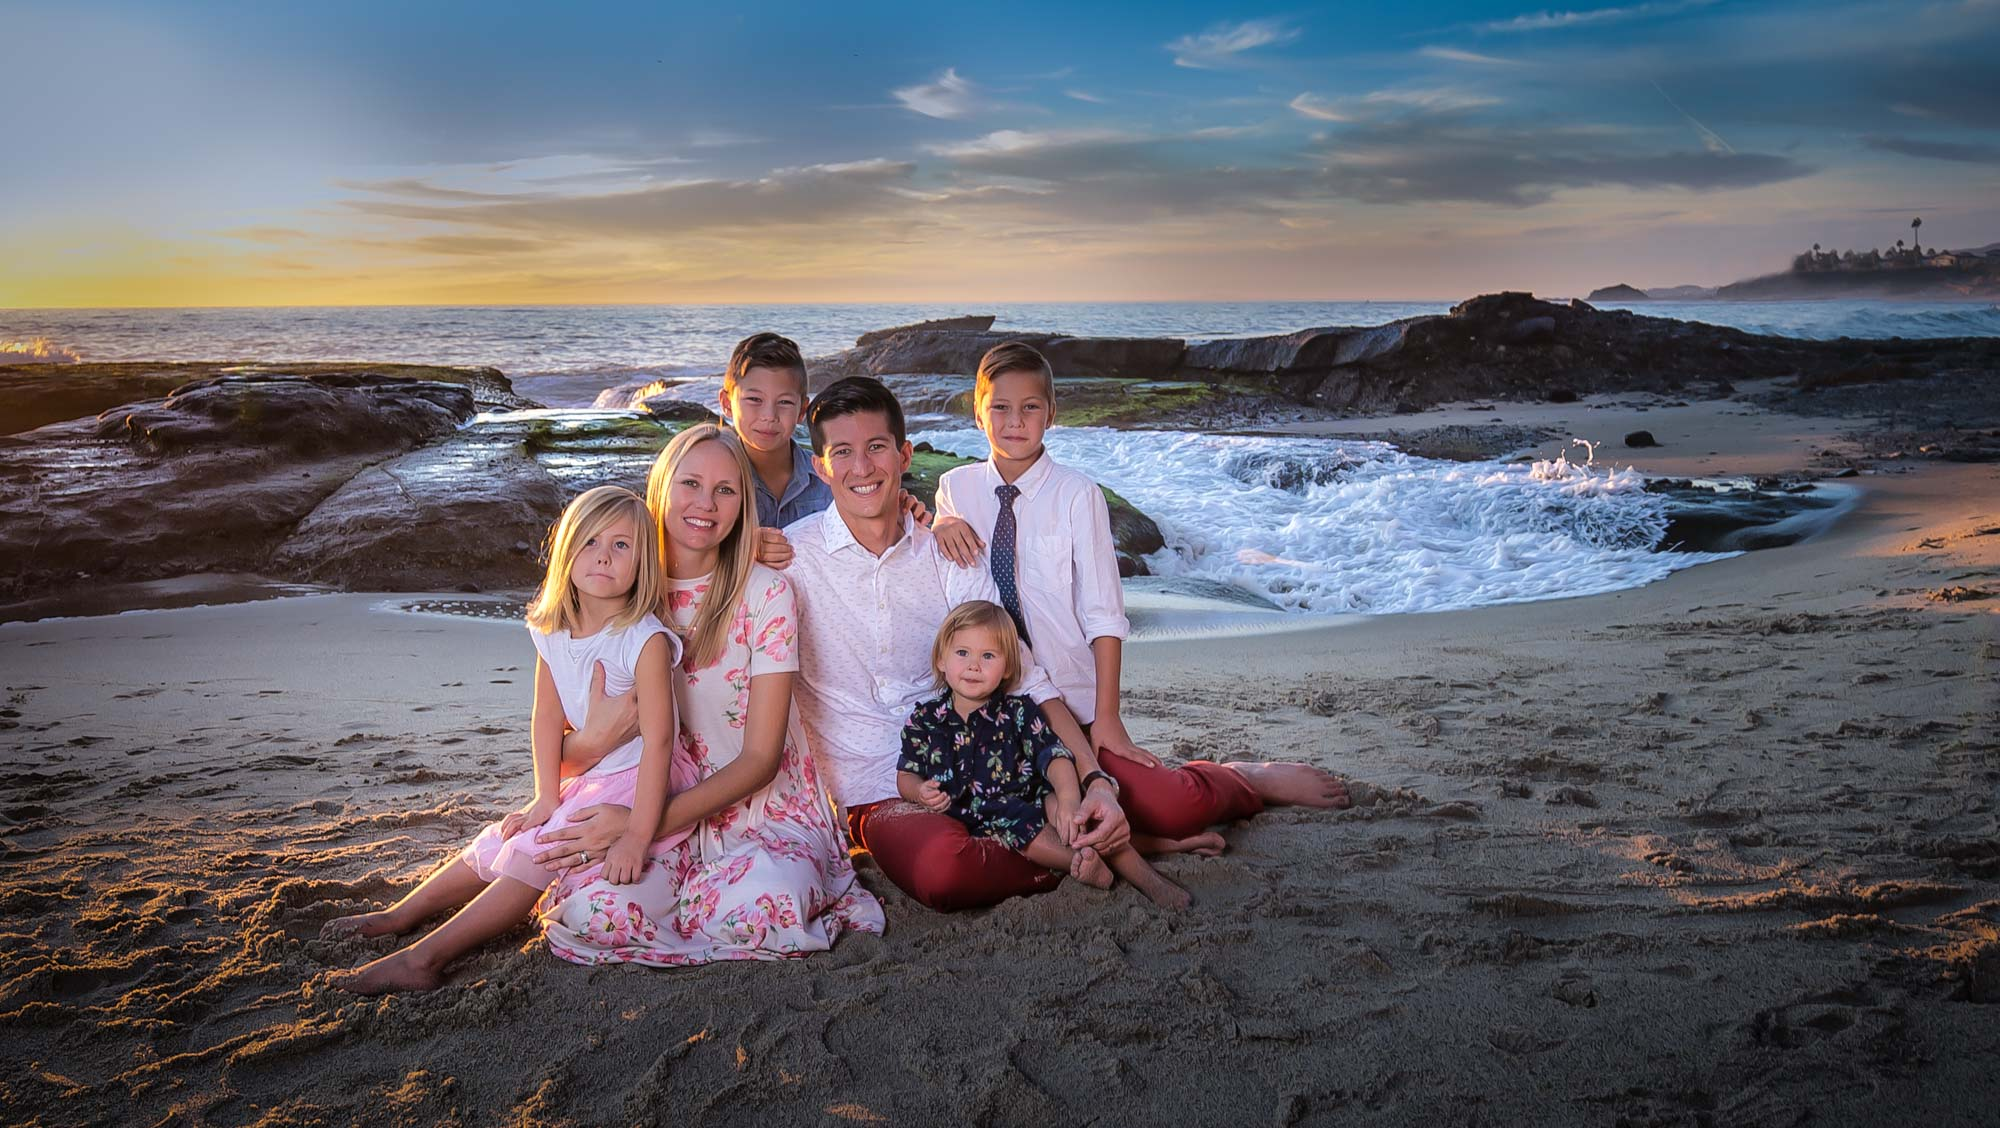 Aida Family Portrait Laguna Beach California